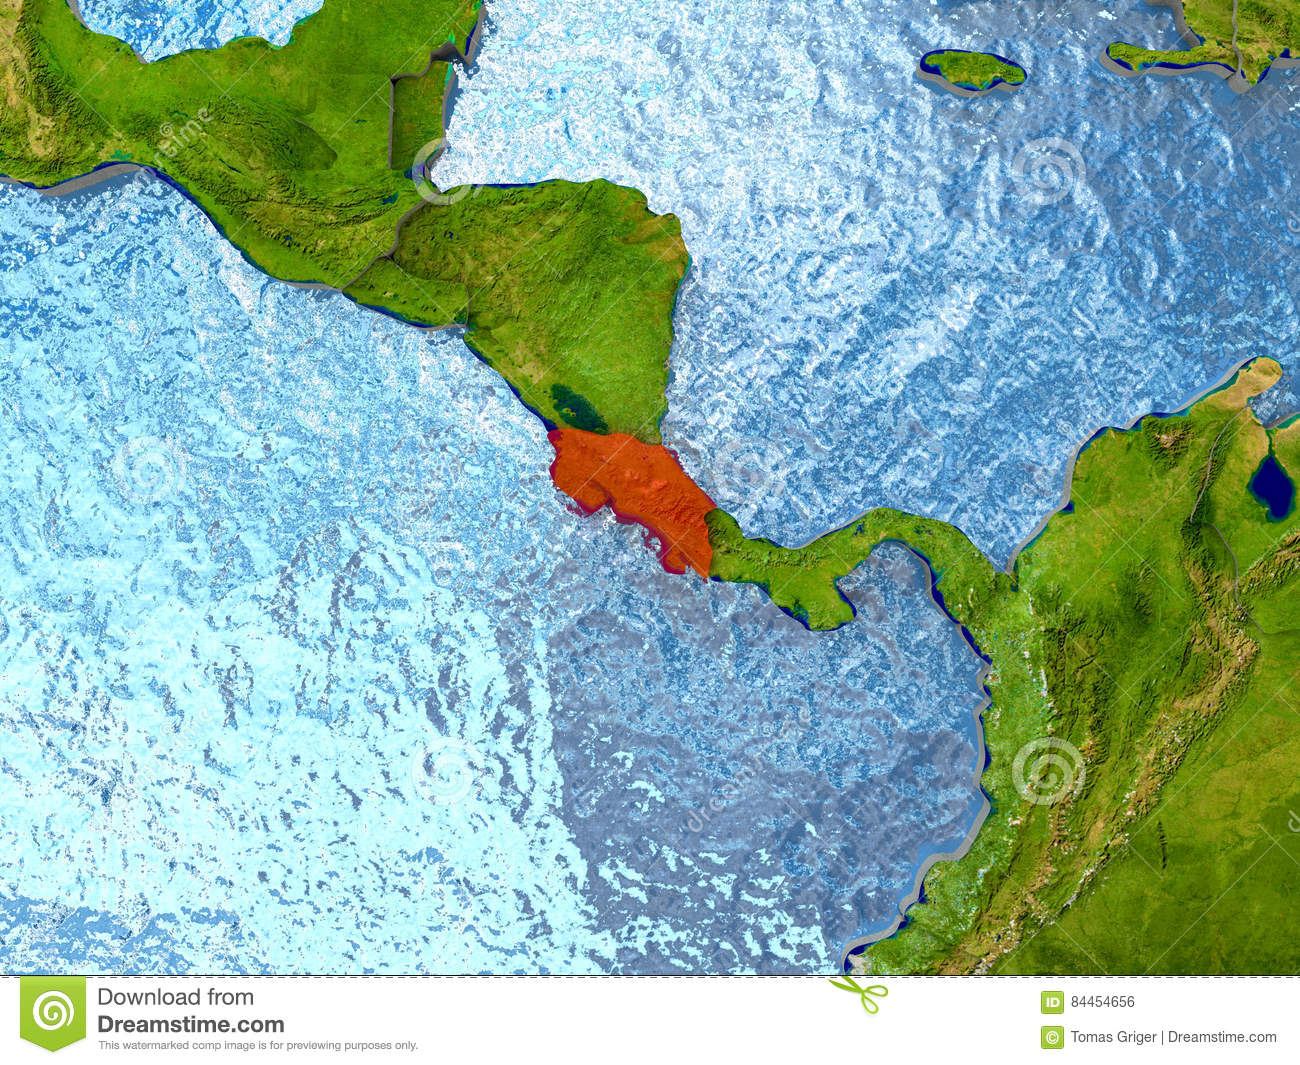 Costa Rica in red stock illustration. Illustration of ... on geography of latin america map, geography of russia map, geography of peru map, geography of italy map, geography of sudan map, geography of greece map, geography of mexico map, geography of brazil map, geography of united states map, geography of india map, geography of spain map, geography of france map, geography of israel map, geography of north america map, geography of egypt map, geography of china map, geography of south africa map, geography of canada map, geography of usa map, geography of japan map,